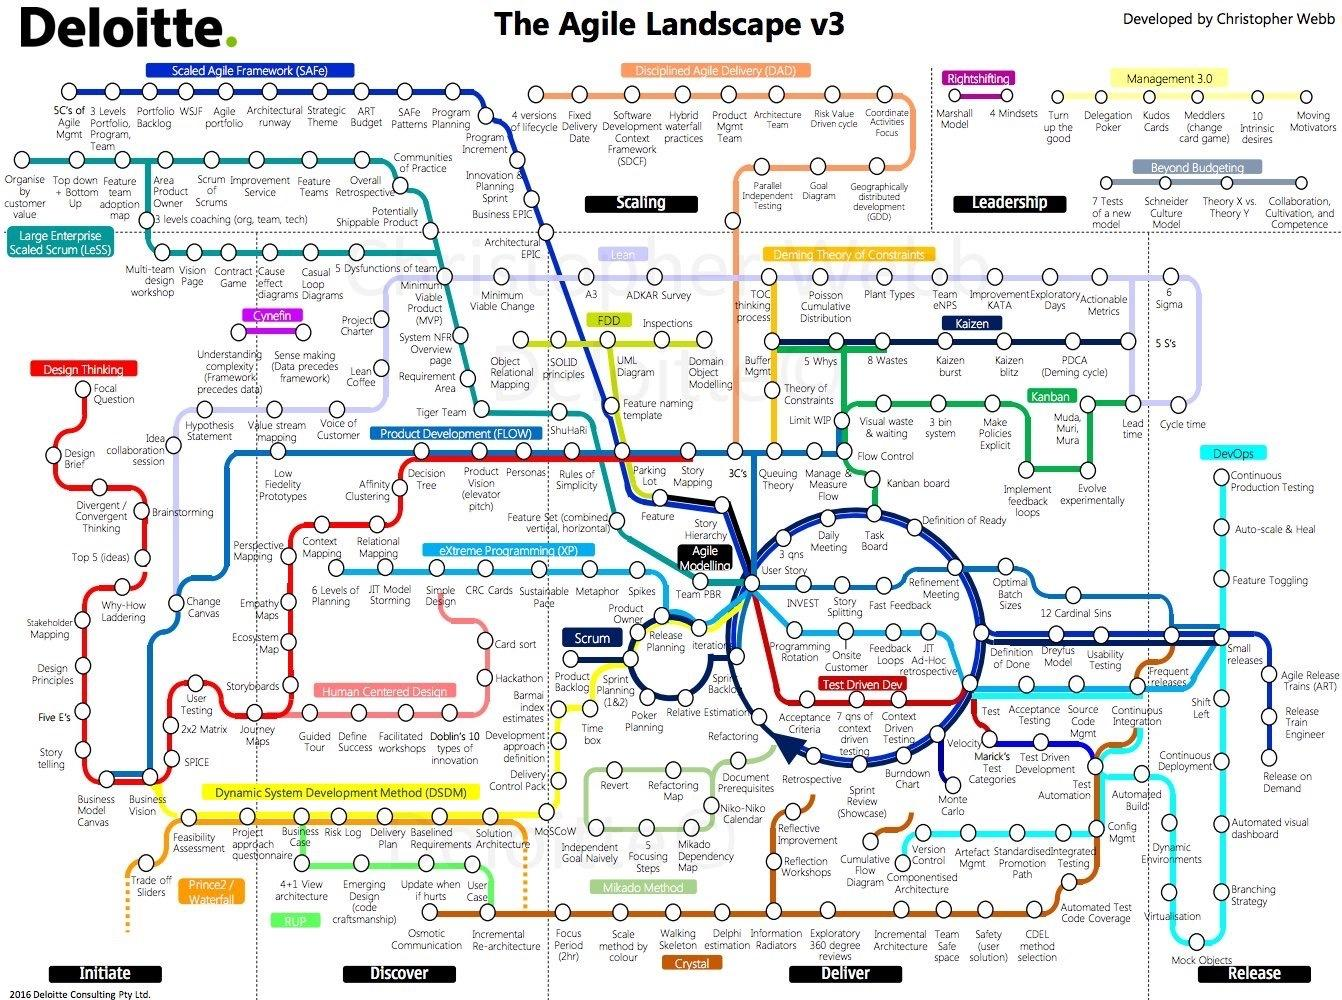 Navigating The Agile Landscape infographic